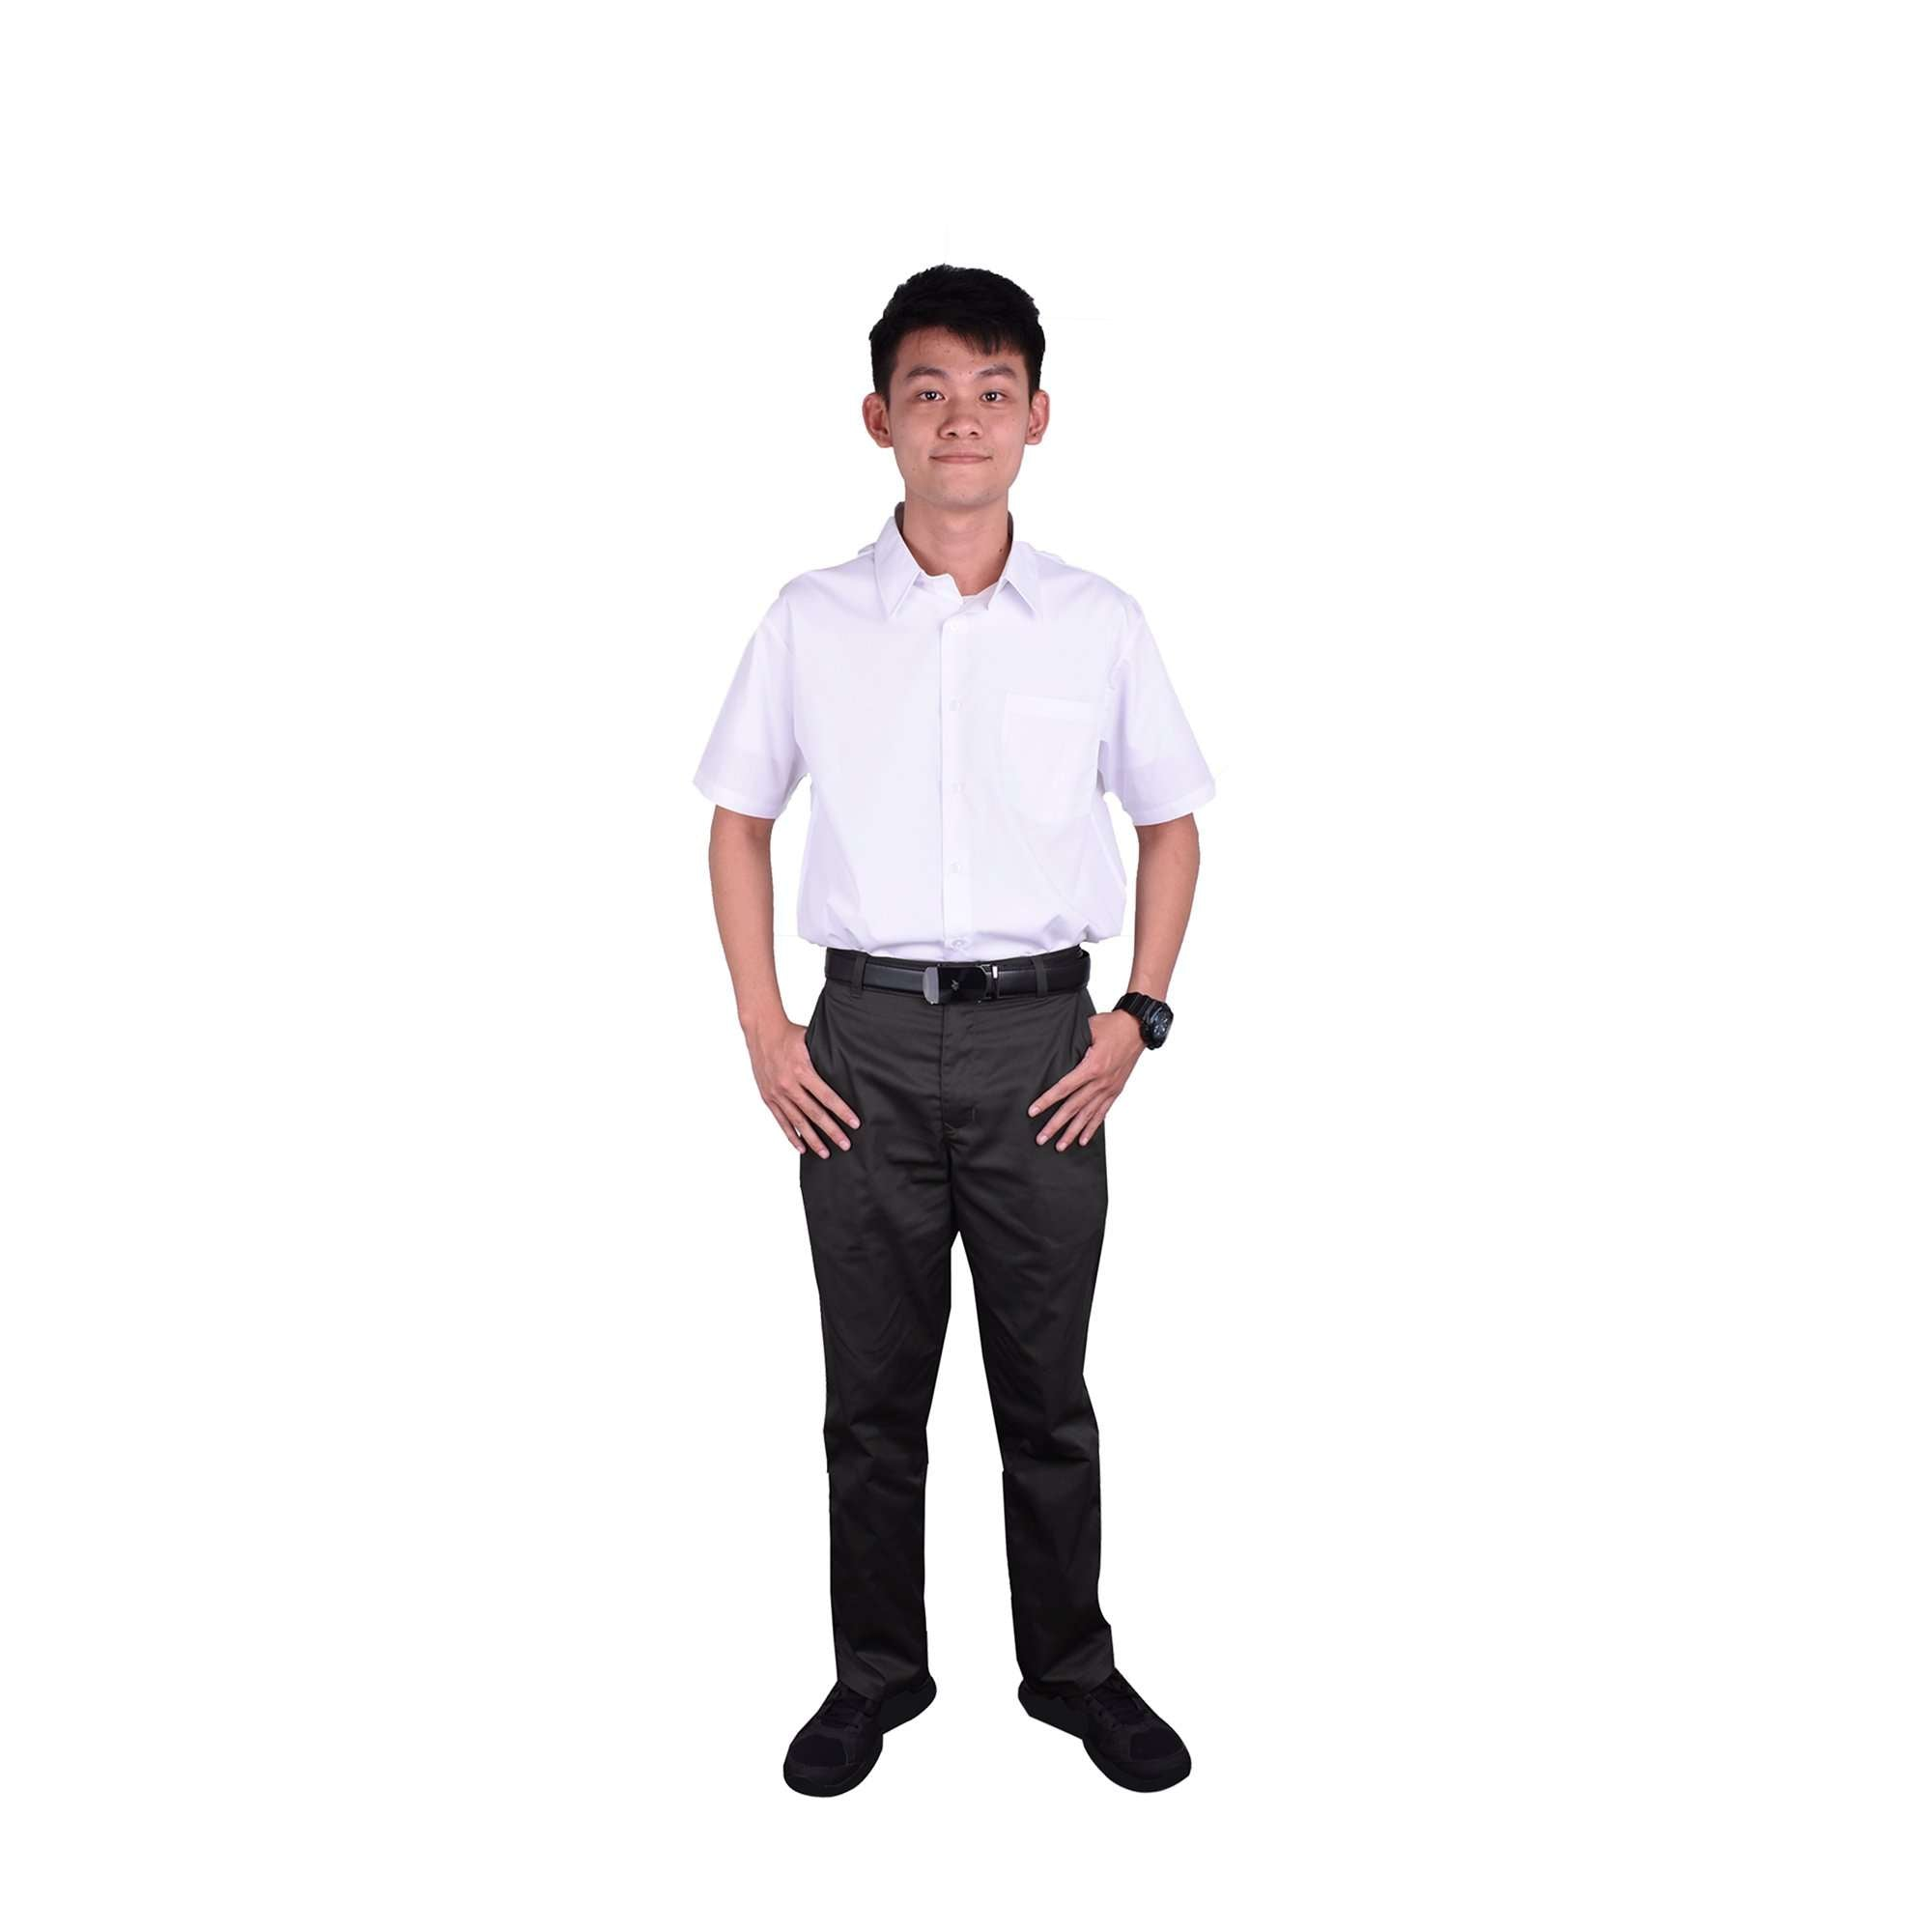 K-SECONDARY BOY SCHOOL UNIFORM Long Pants Regular Fit  - GREEN X953109-2501-N5 : Buy K-Secondary online at CMG.MY